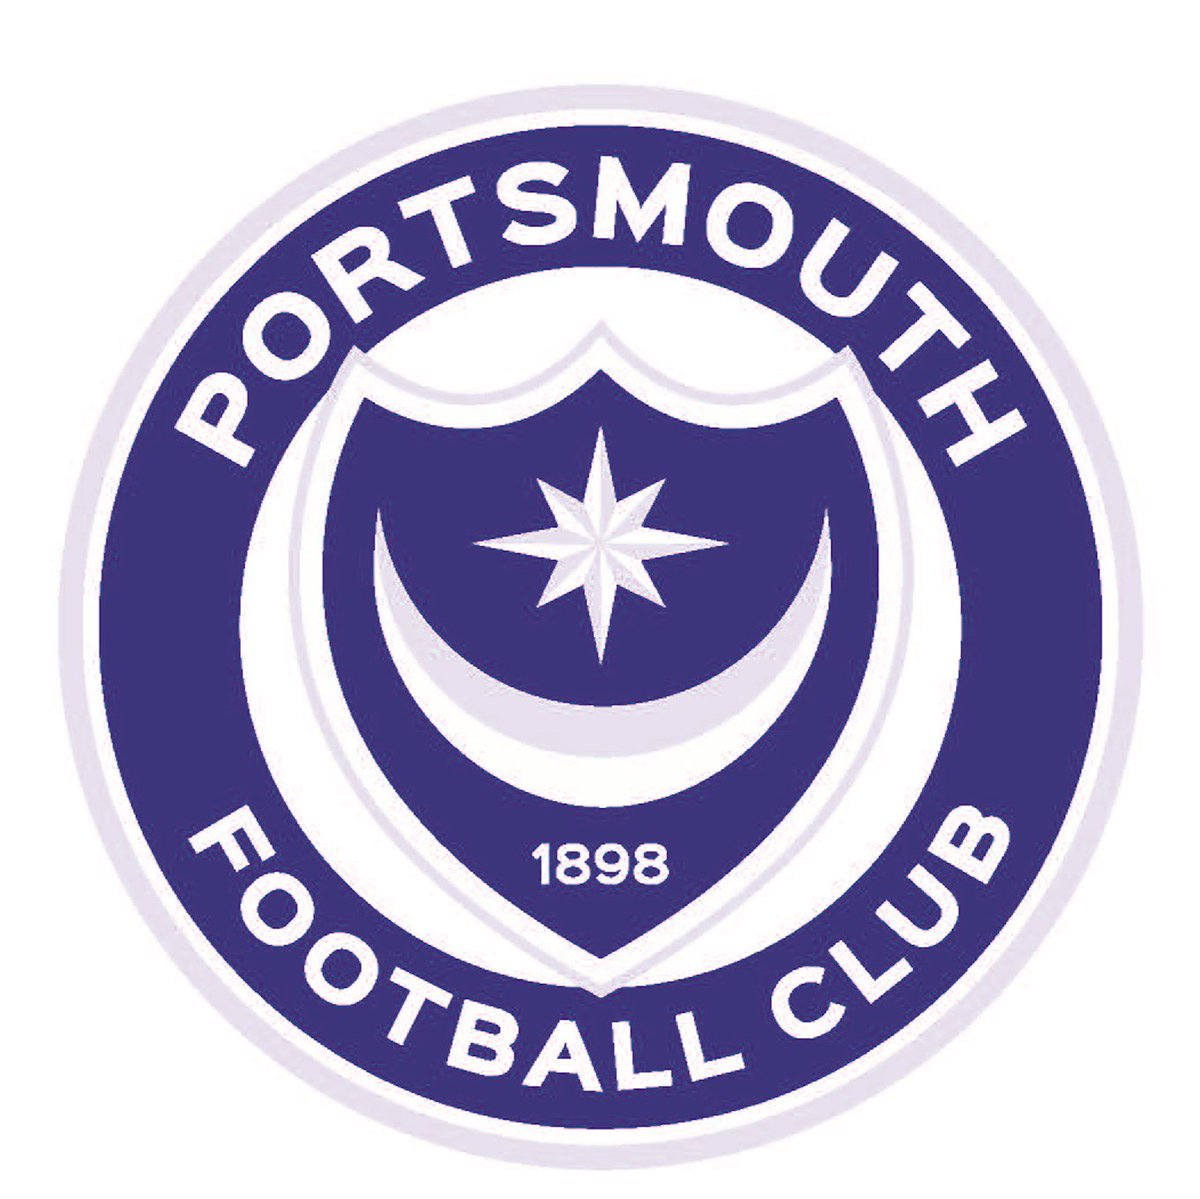 OFFICIAL: Portsmouth have unveiled their two new club crests, the first to be used on the club's shirt and the other for merchandising and commercial opportunities.